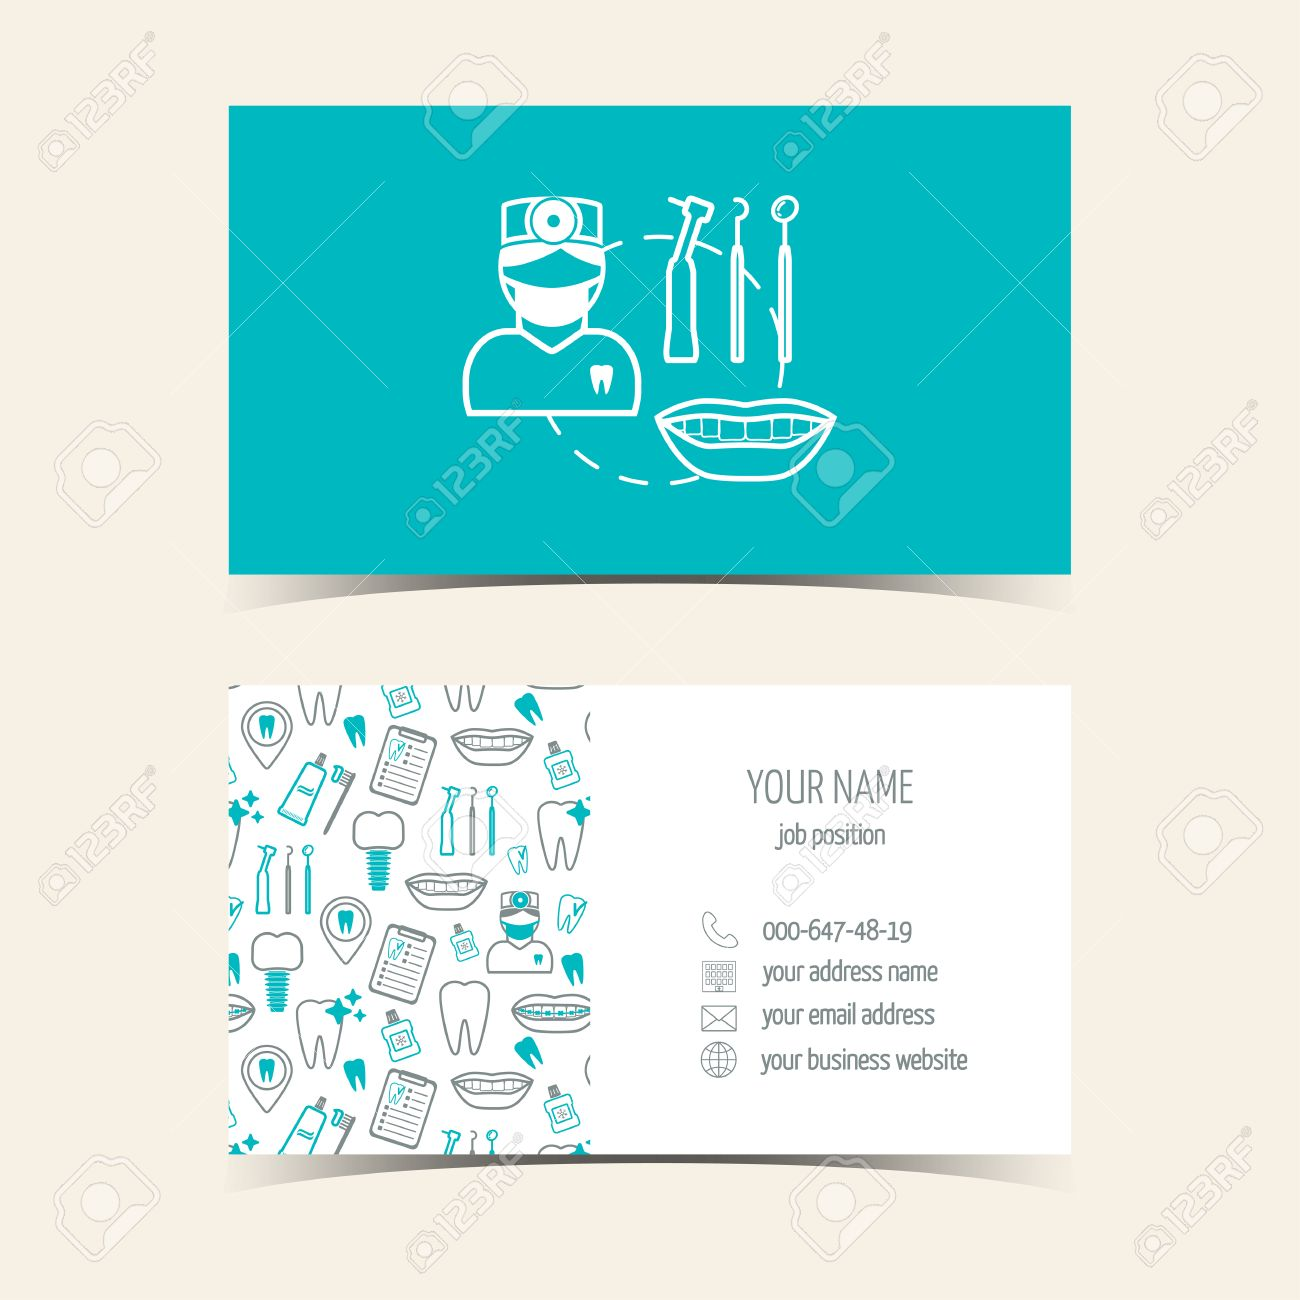 Business cards for dental clinic promotional products flat business cards for dental clinic promotional products flat design vector illustration stock vector colourmoves